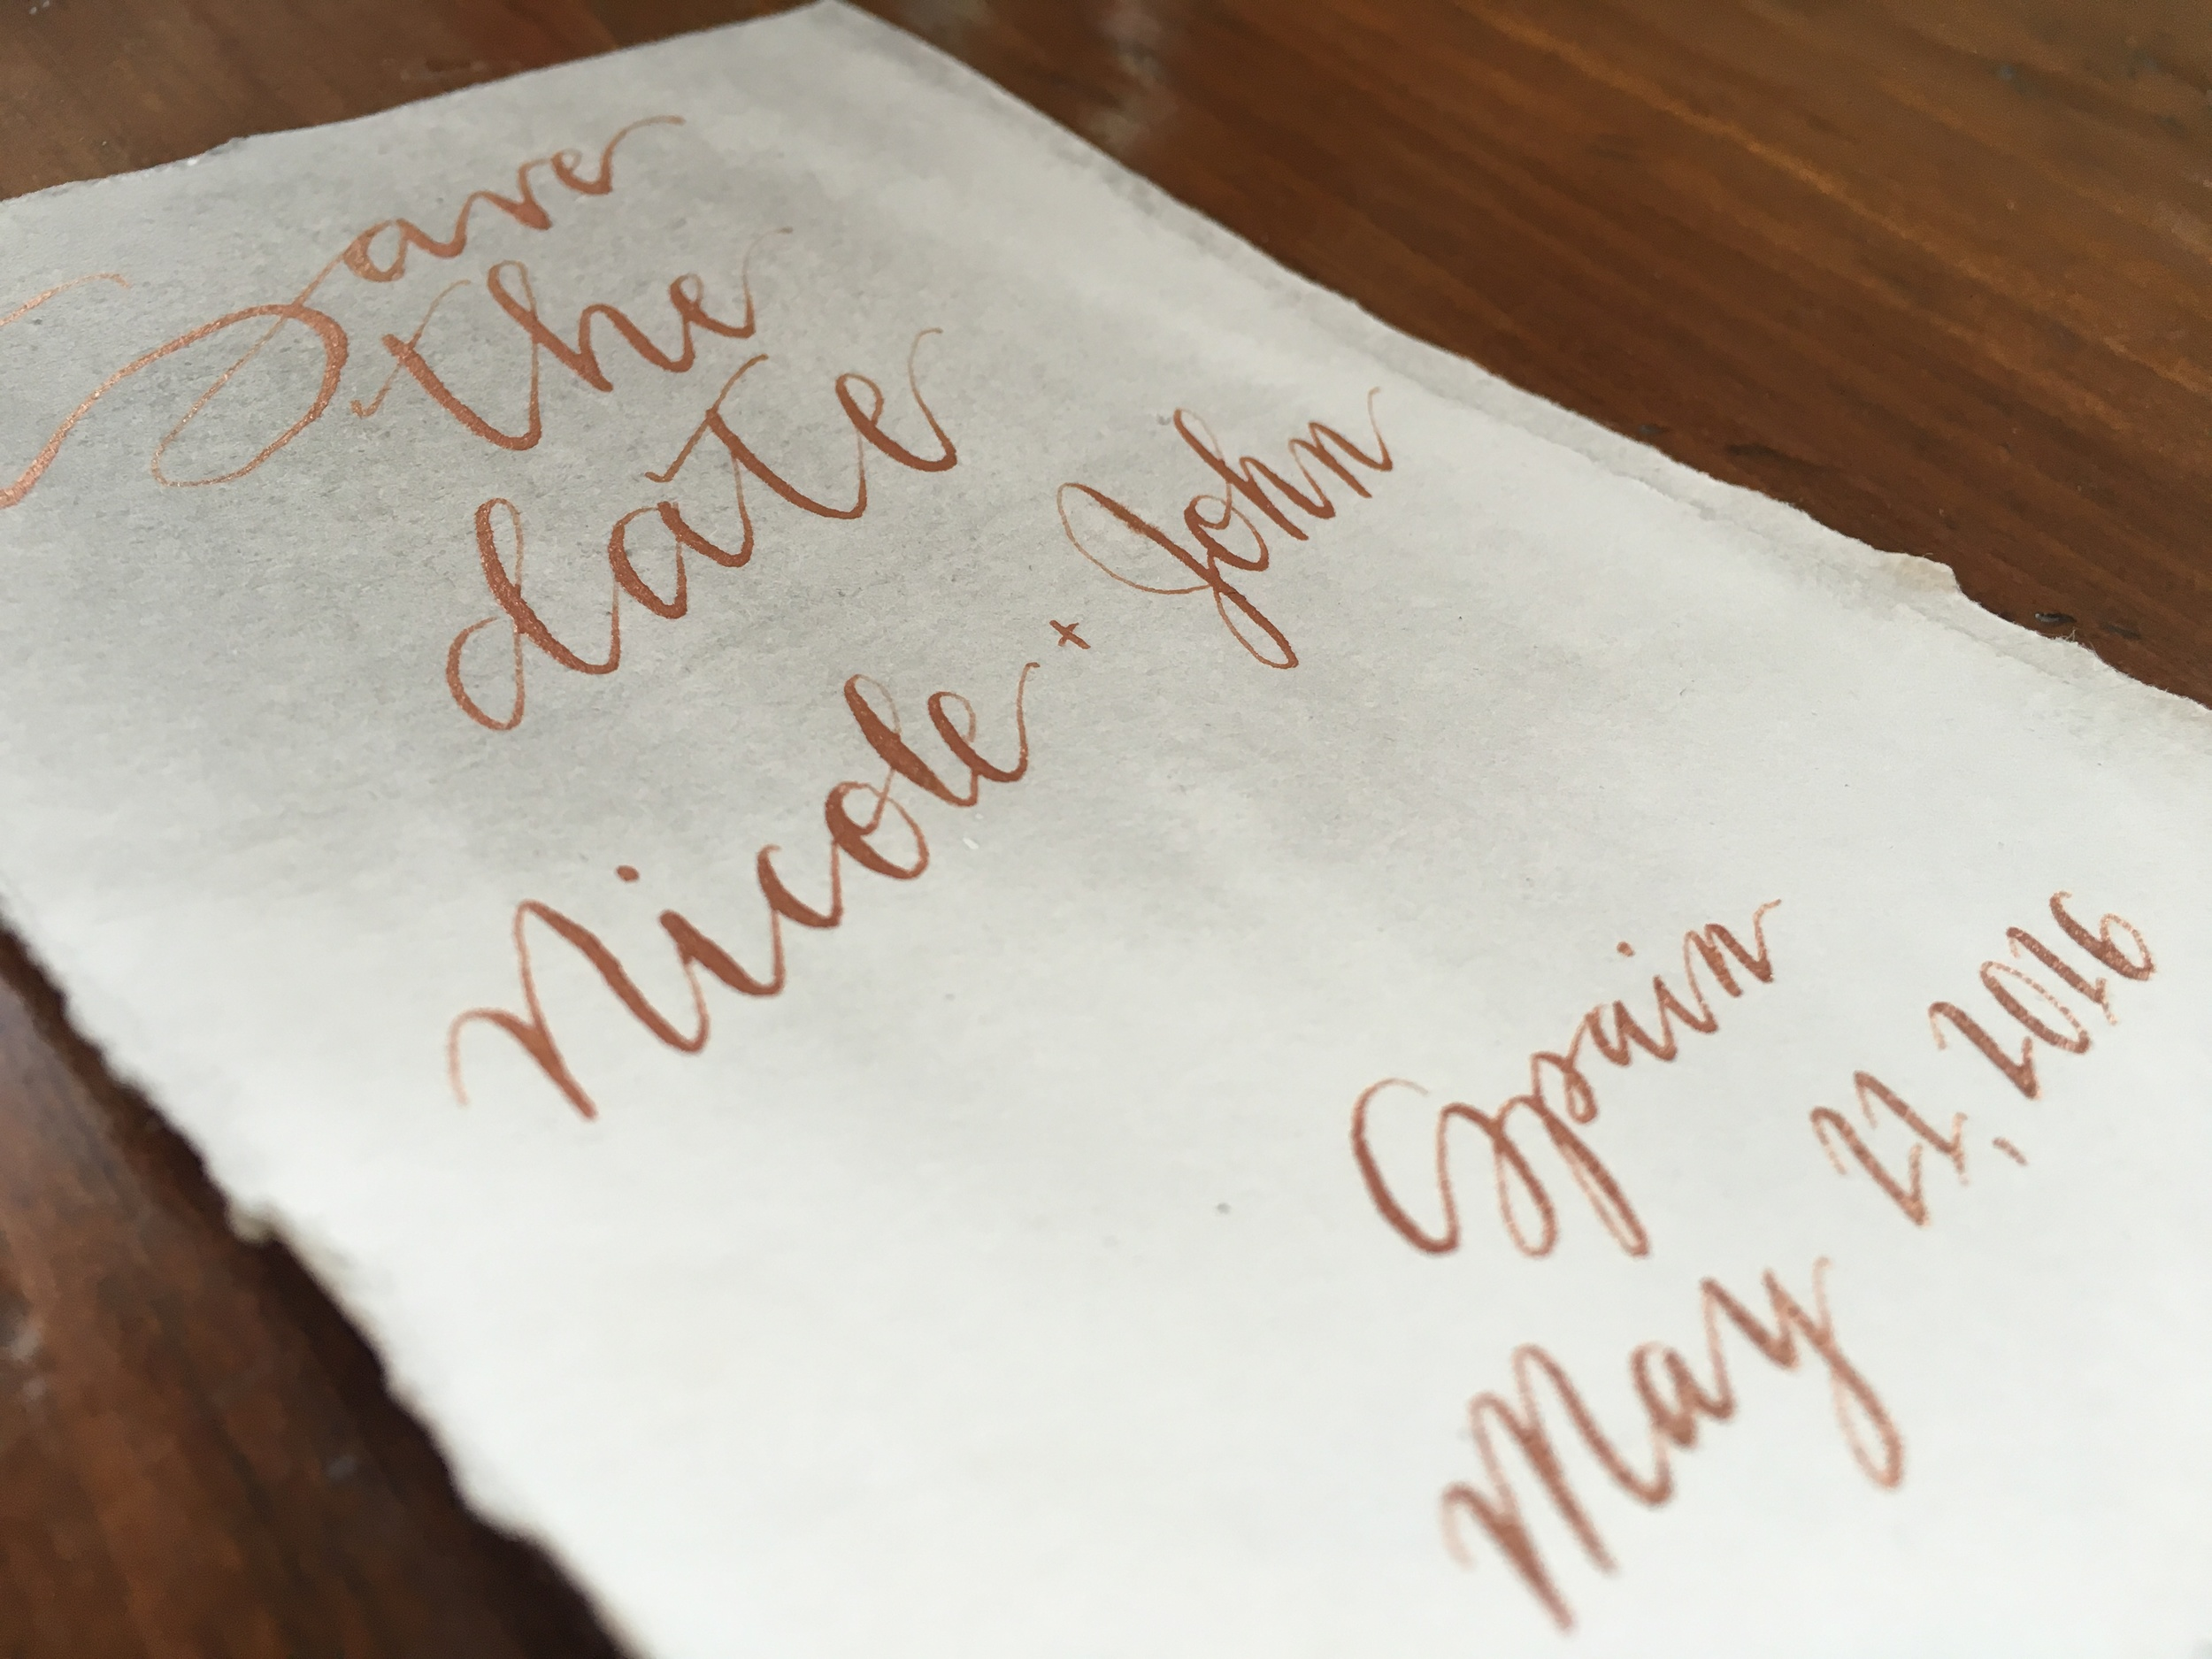 Custom lettered save the date with watercolor wash background and deckled edge for a destination wedding in Spain